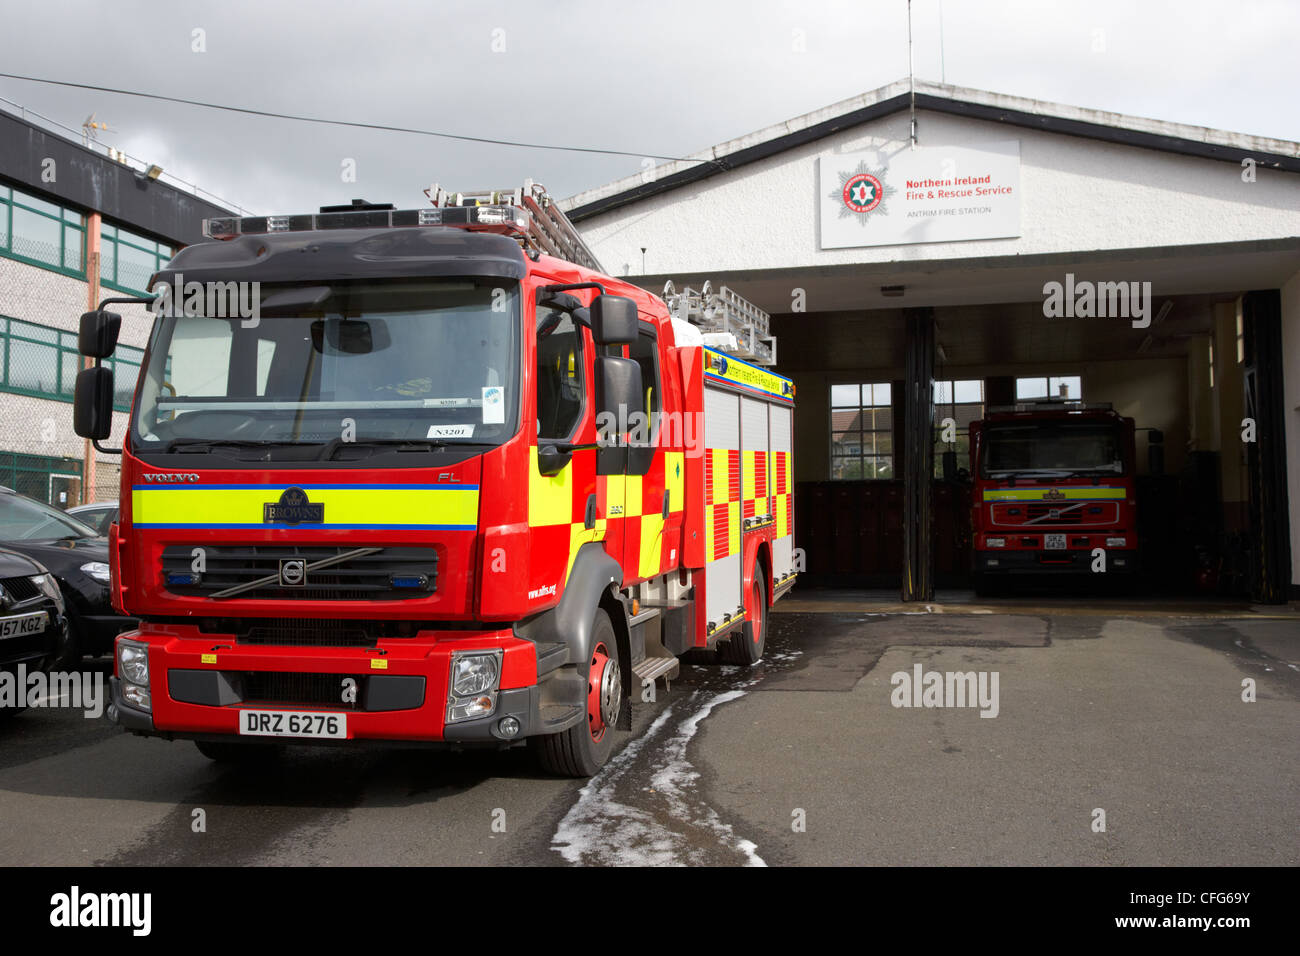 Northern Ireland Fire and Rescue Service NIFRS fire engine at antrim town fire station county antrim northern ireland - Stock Image